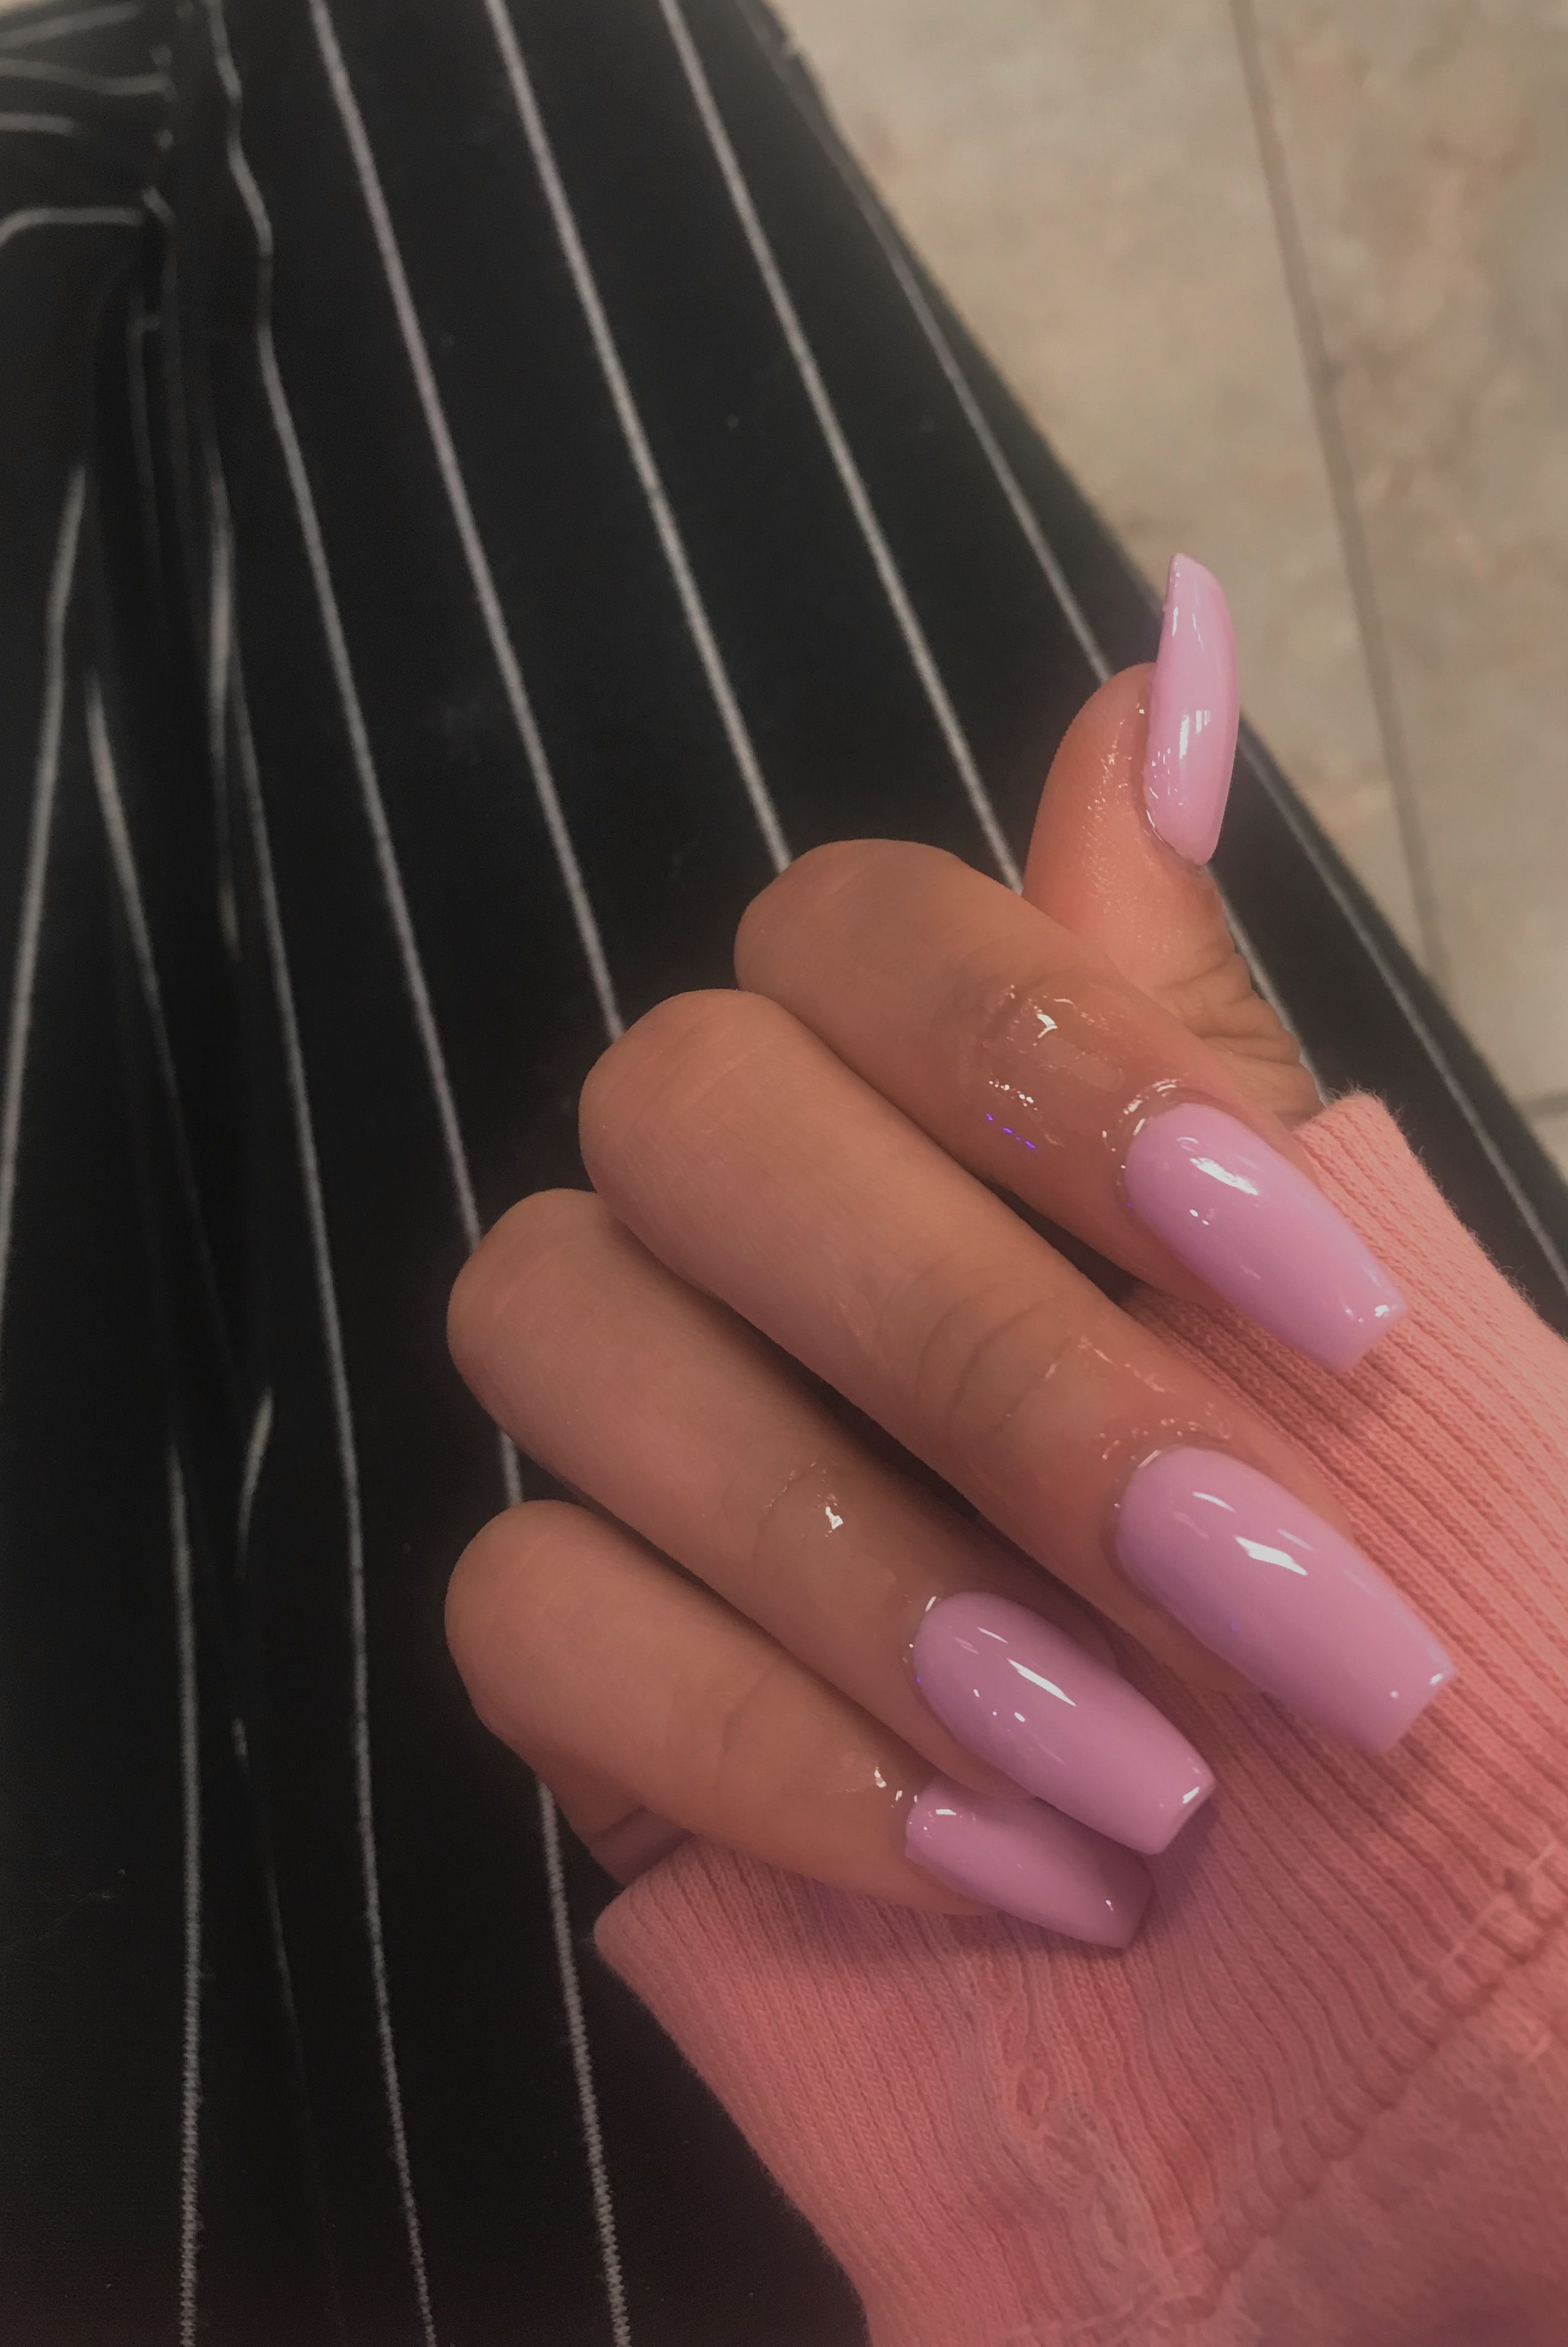 Acrylic Nails Coffin Pink Aesthetic Girly Girly Acrylic Nails Birthday Nails Nails